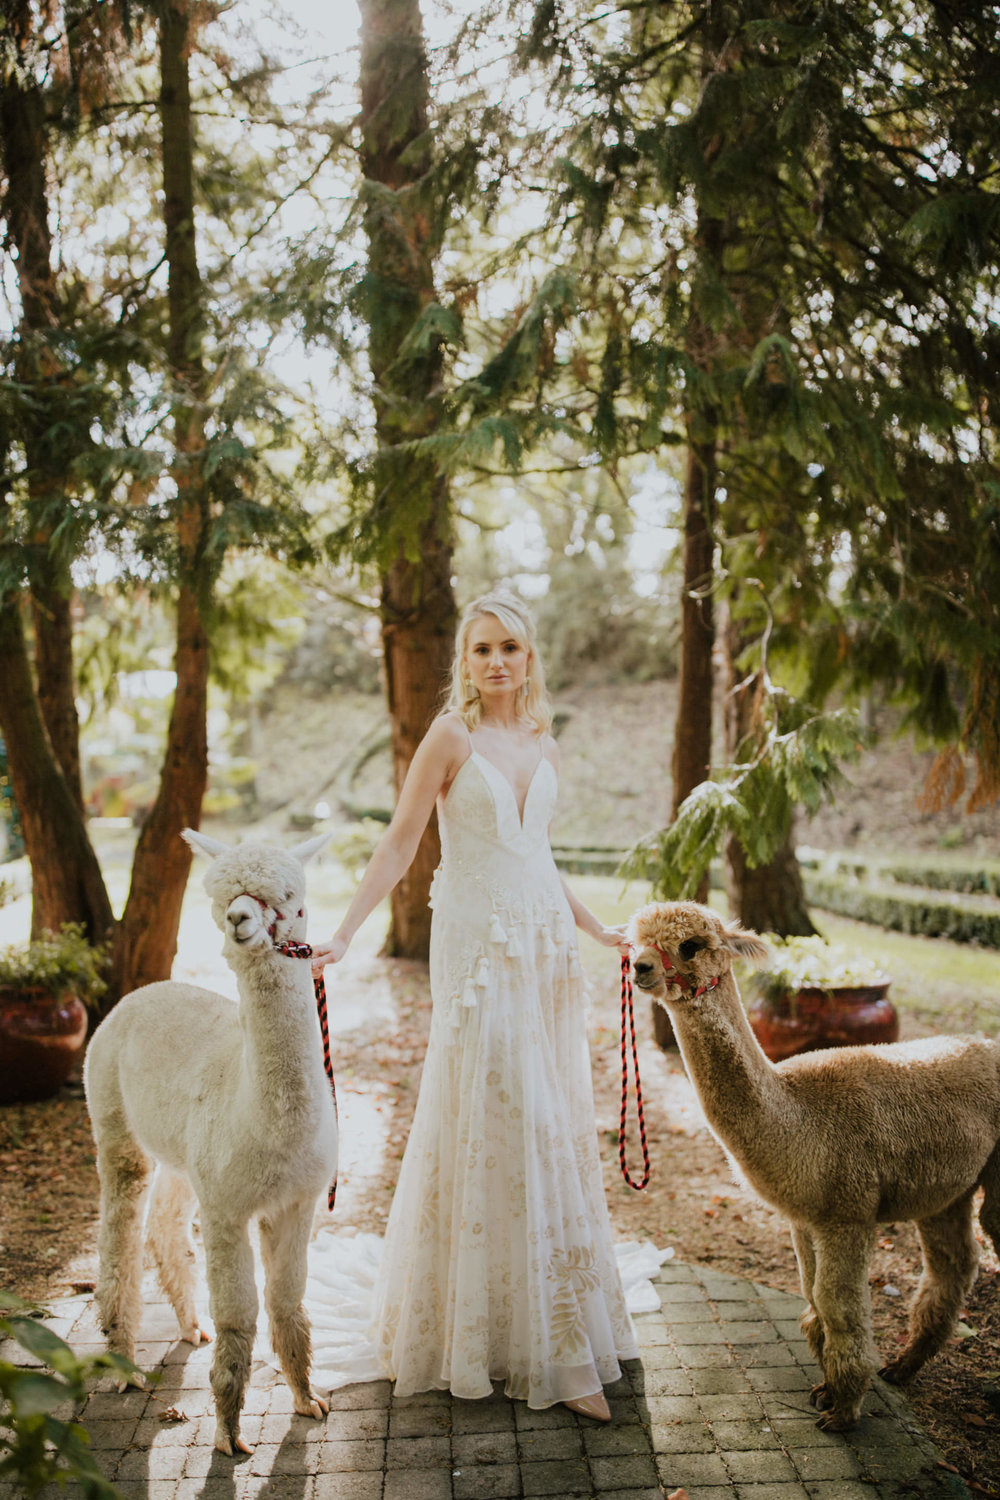 boho_wedding_alpaca_xpose_station_house_livia_figueiredo_photography_17.jpg